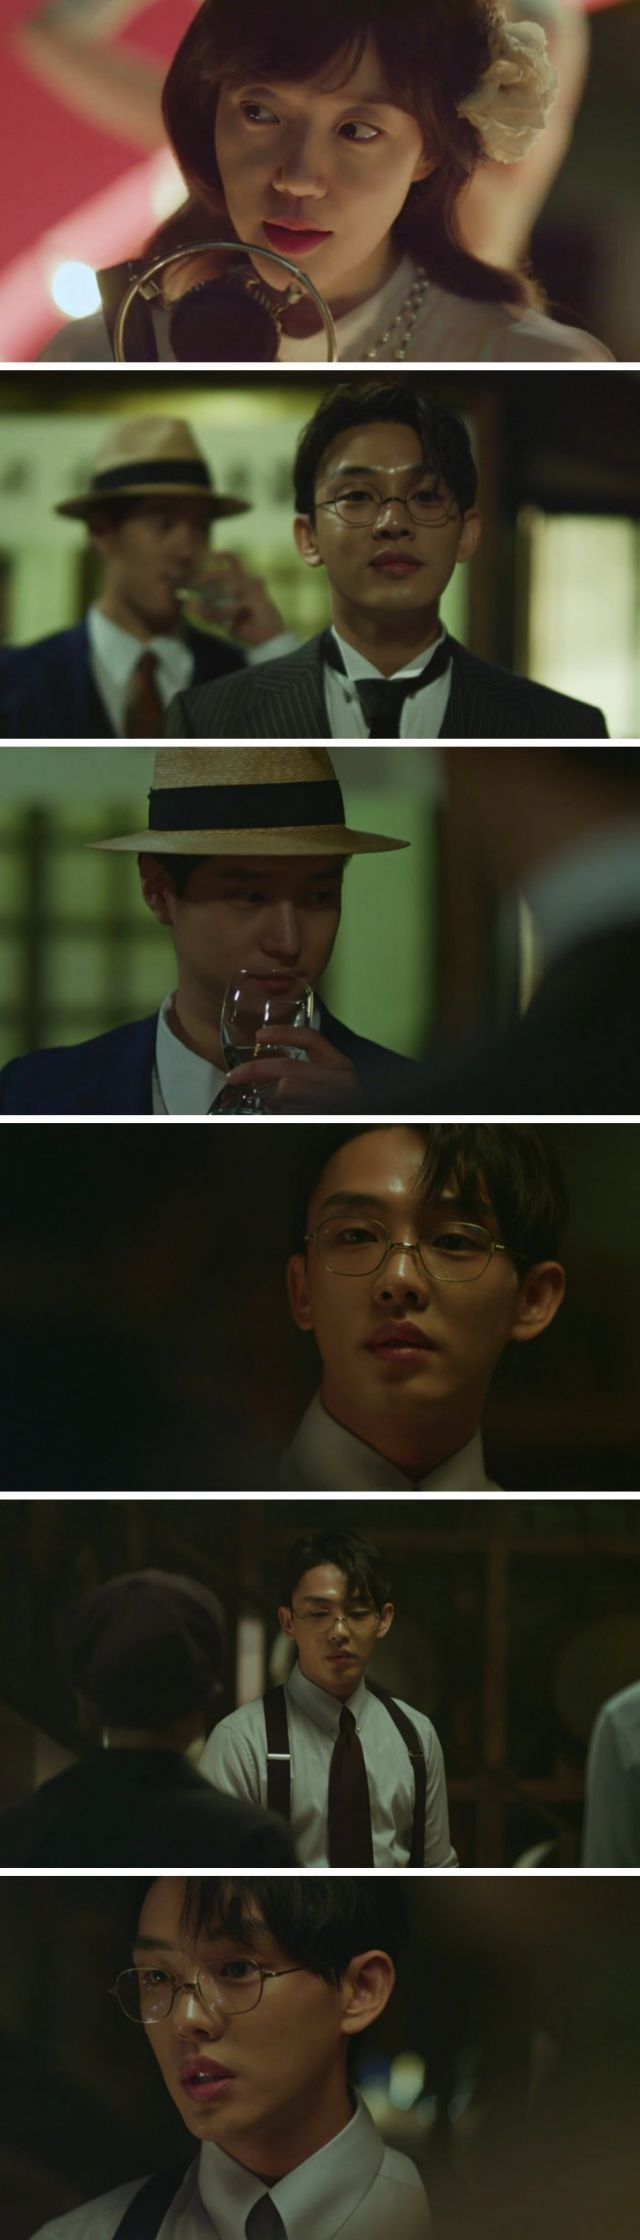 Added episodes 13 and 14 captures for the Korean drama 'Chicago Typewriter'.